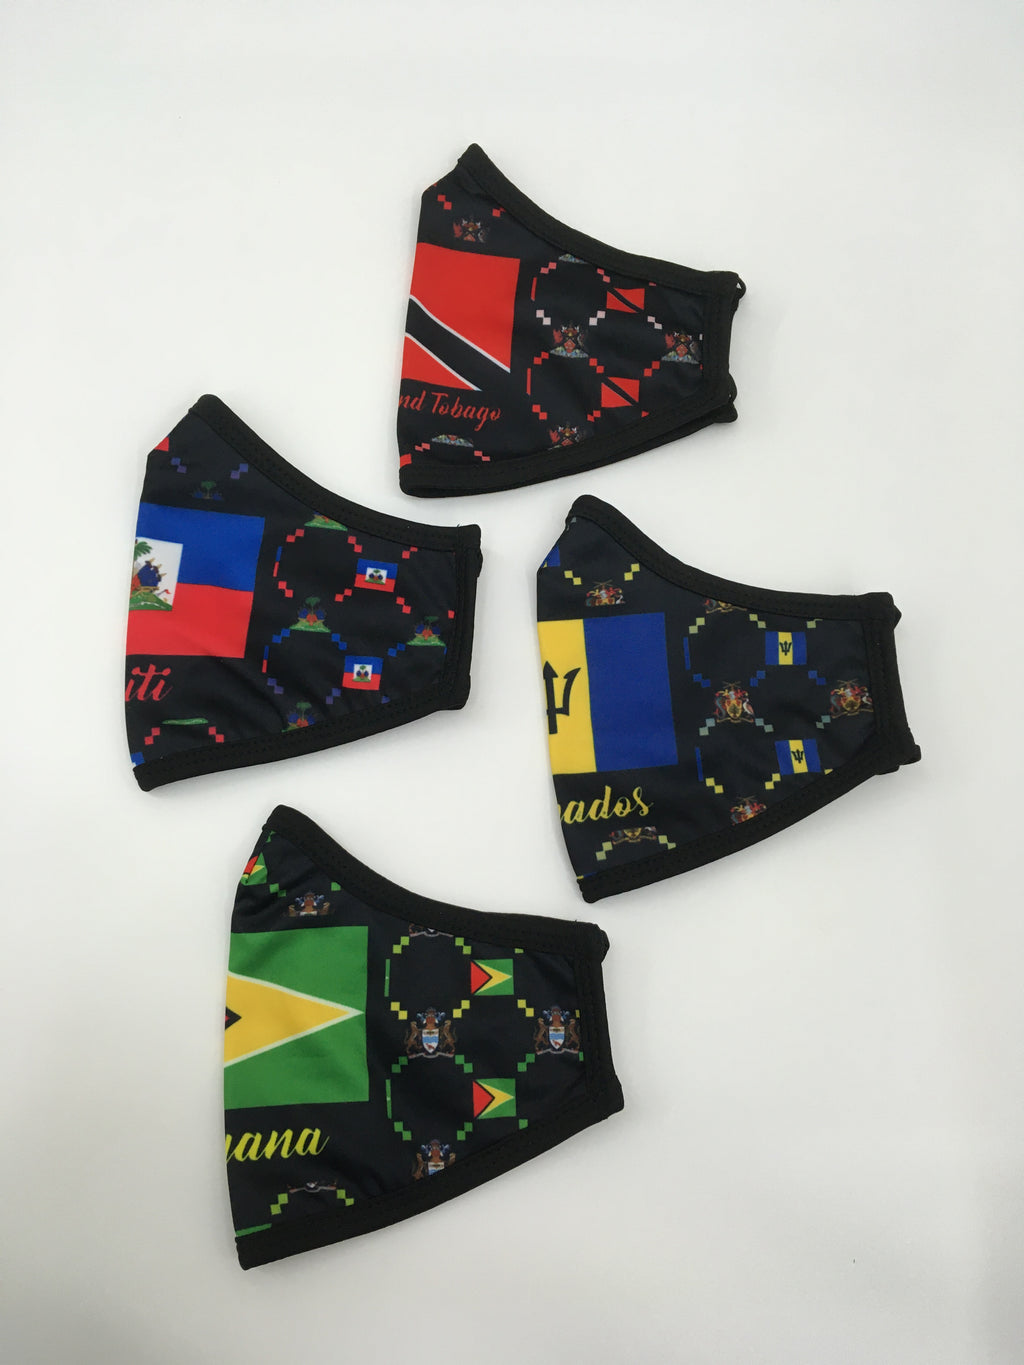 Stylish face masks with nation flags.